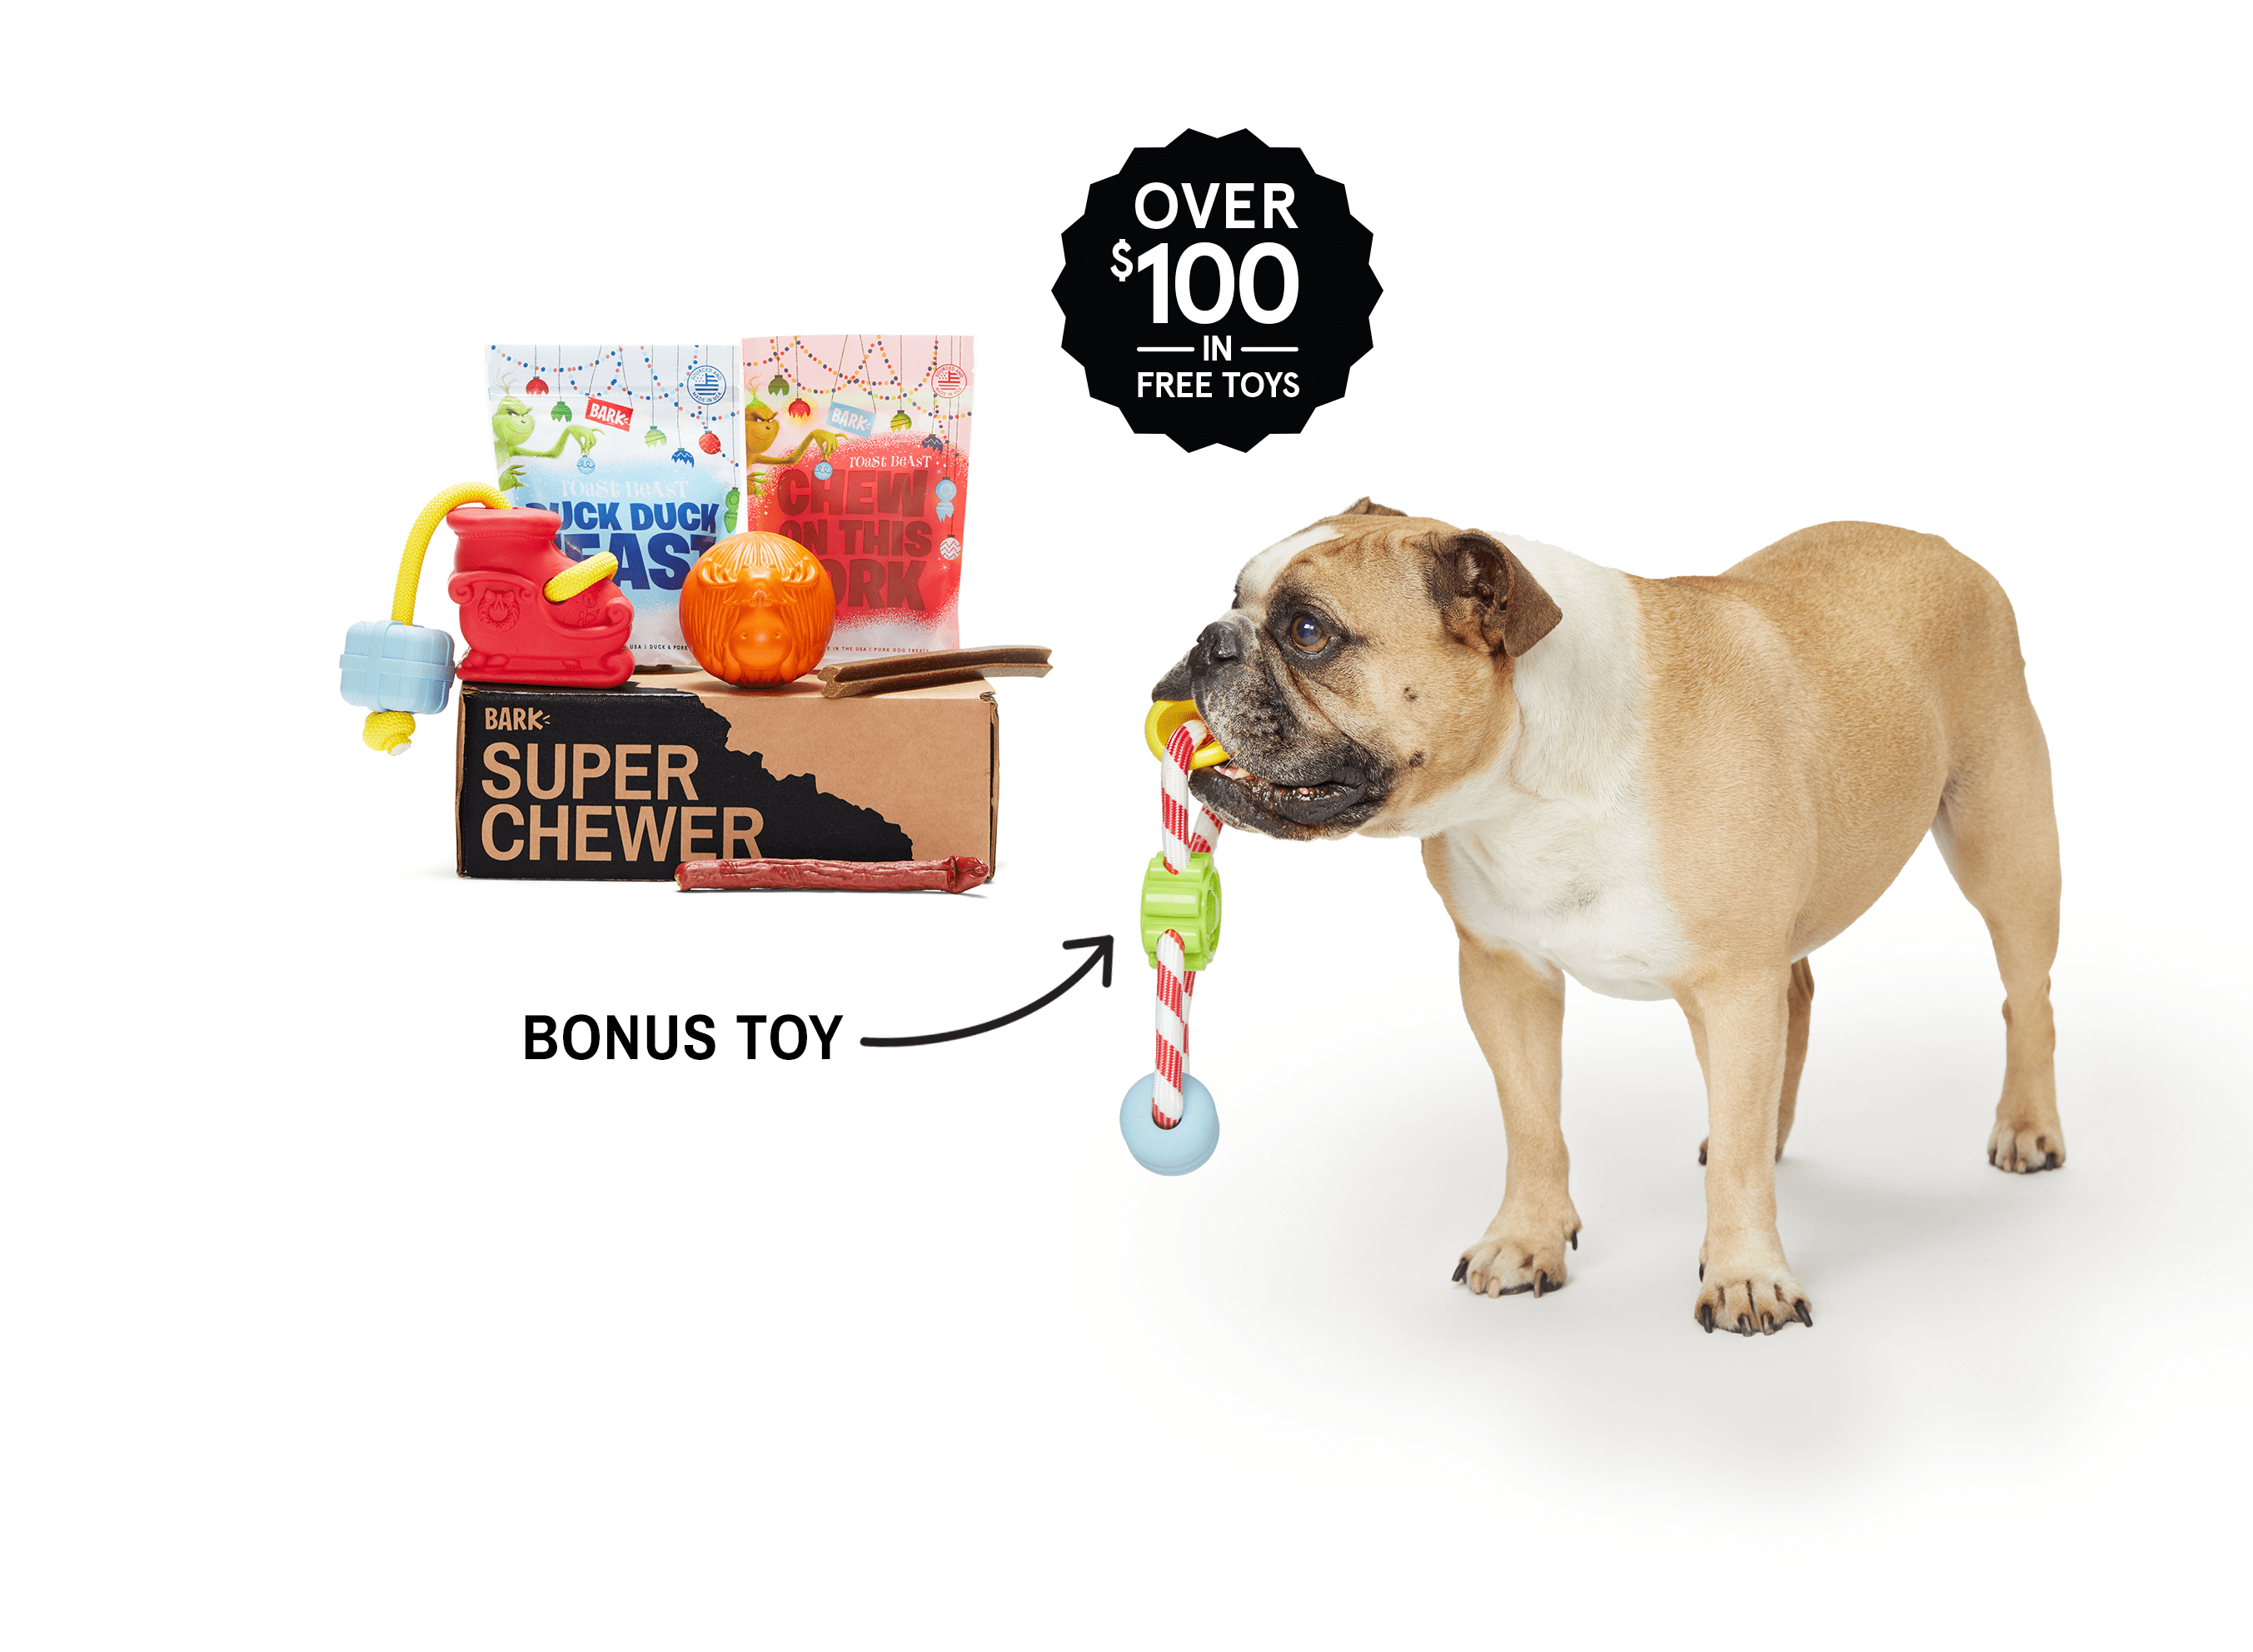 BarkBox Super Chewer Coupon: Get FREE Bonus Toy Every Month With 6+ Month Plan!